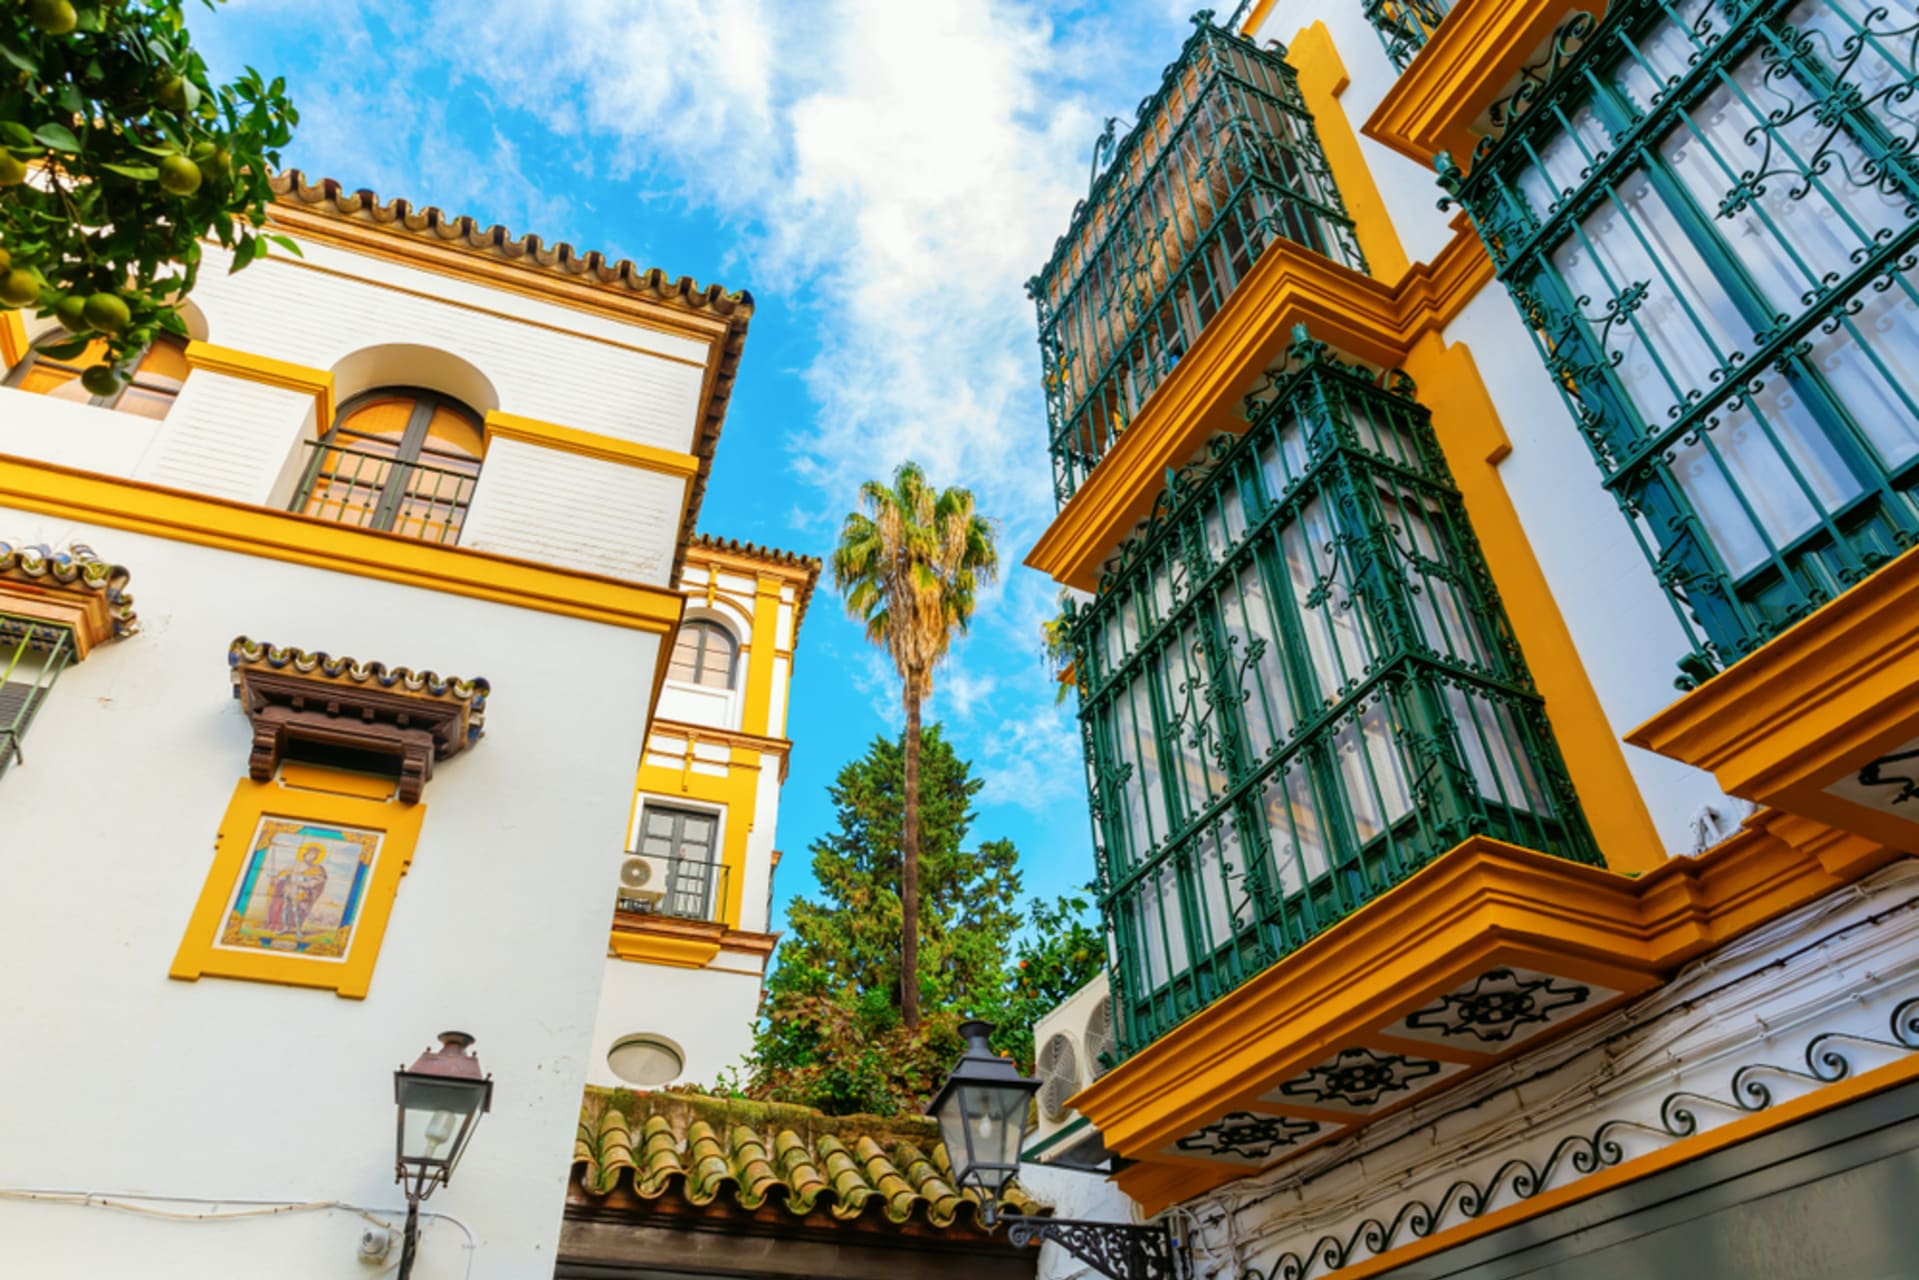 Seville - The Quiet Beauty of Seville's Jewish Quarter